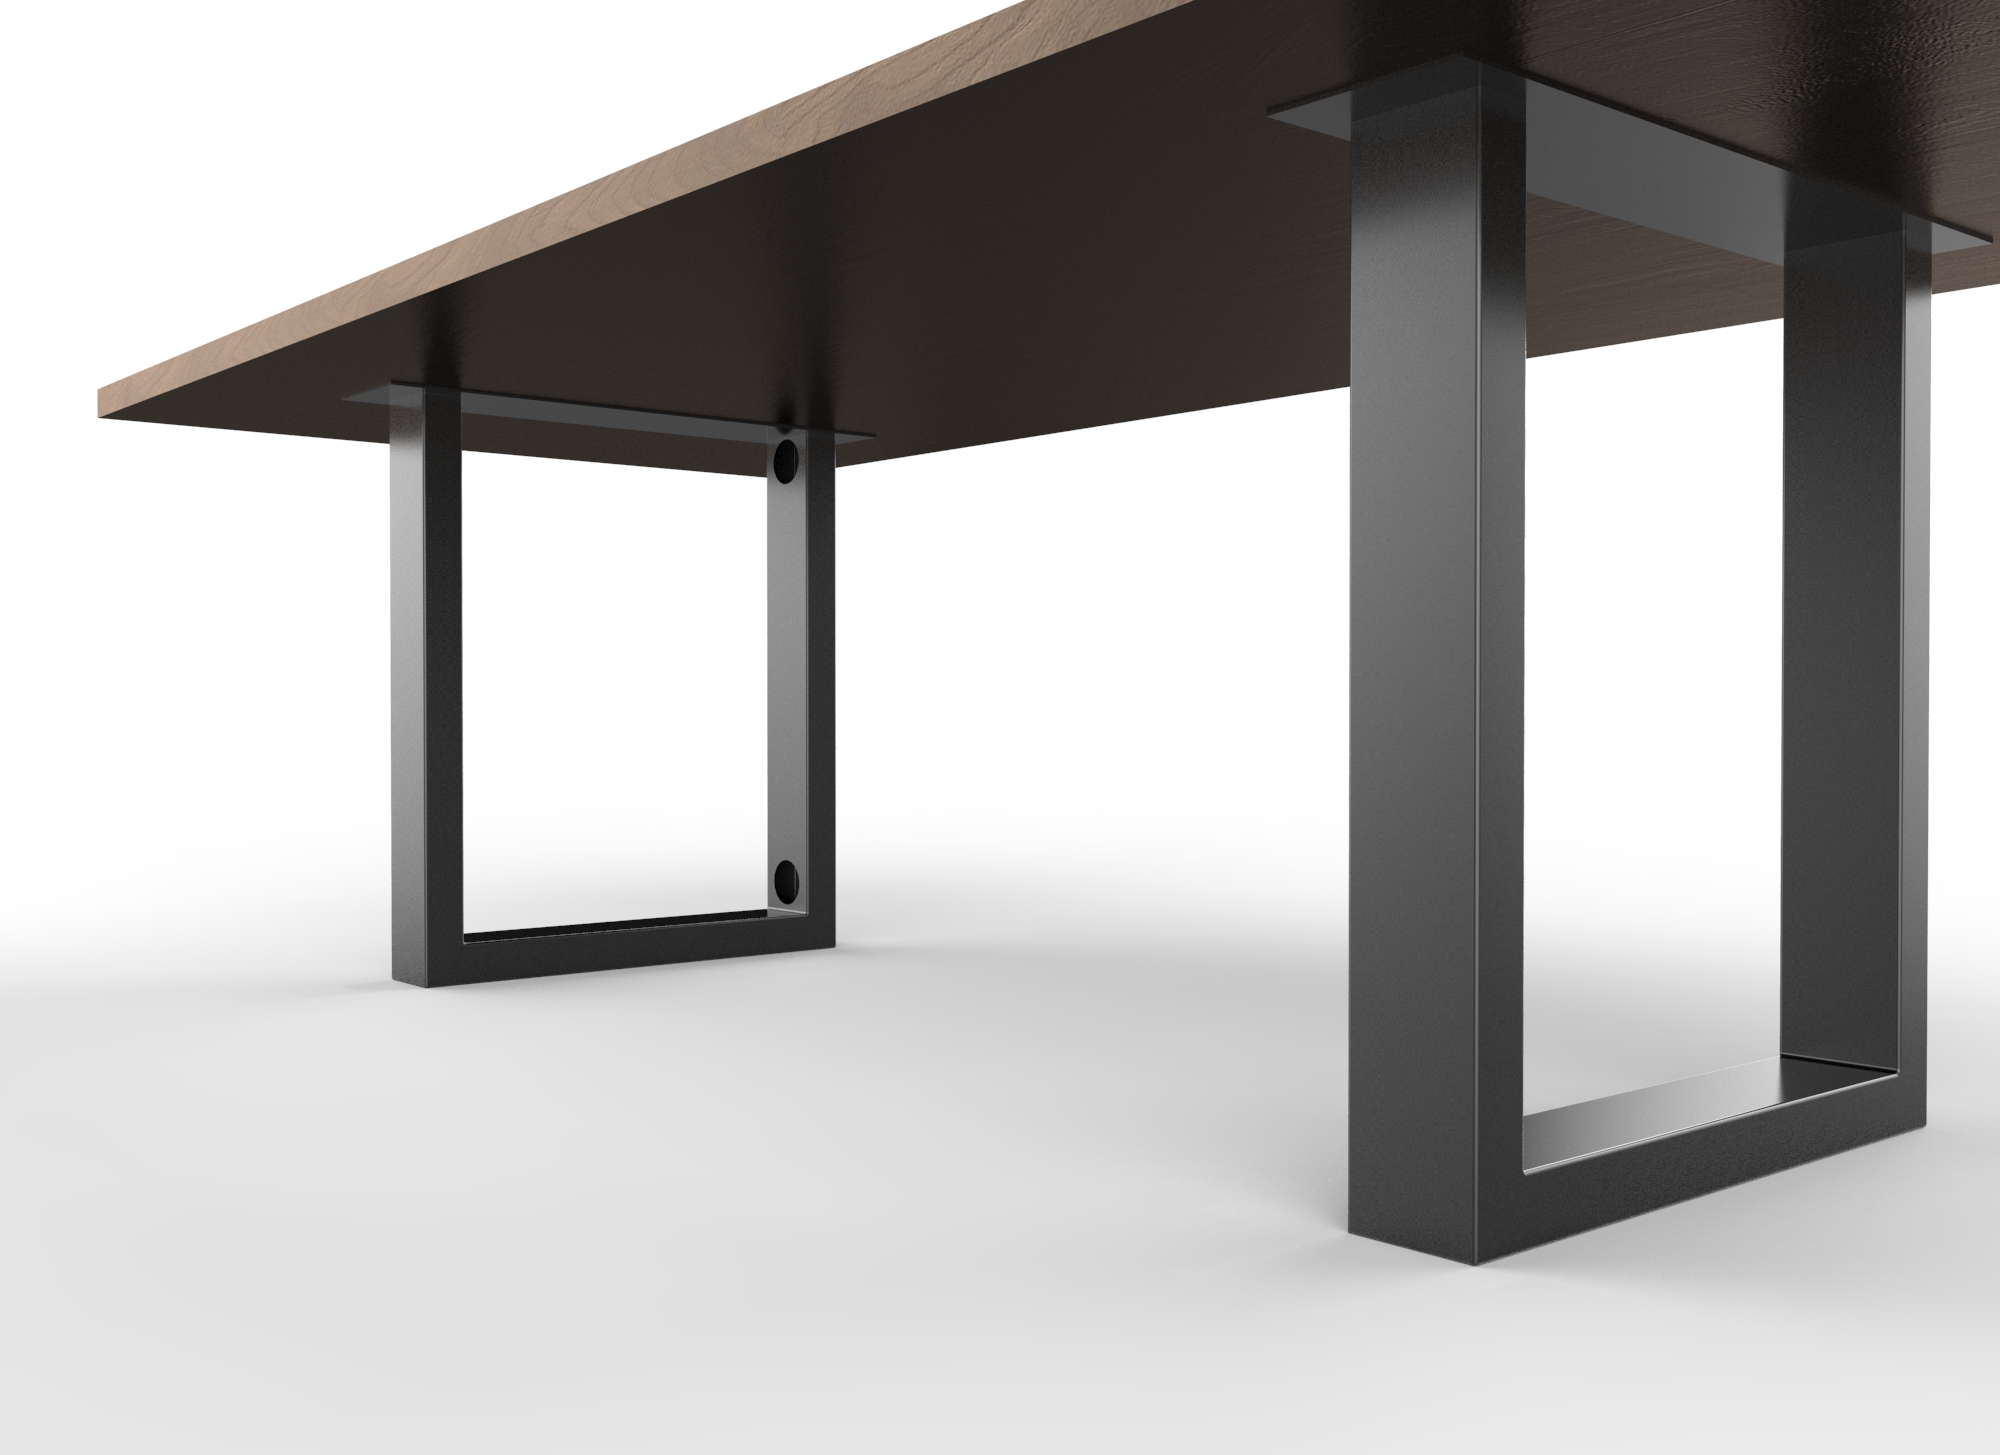 Brower table in Clear Walnut with Matte Black base with data cutouts